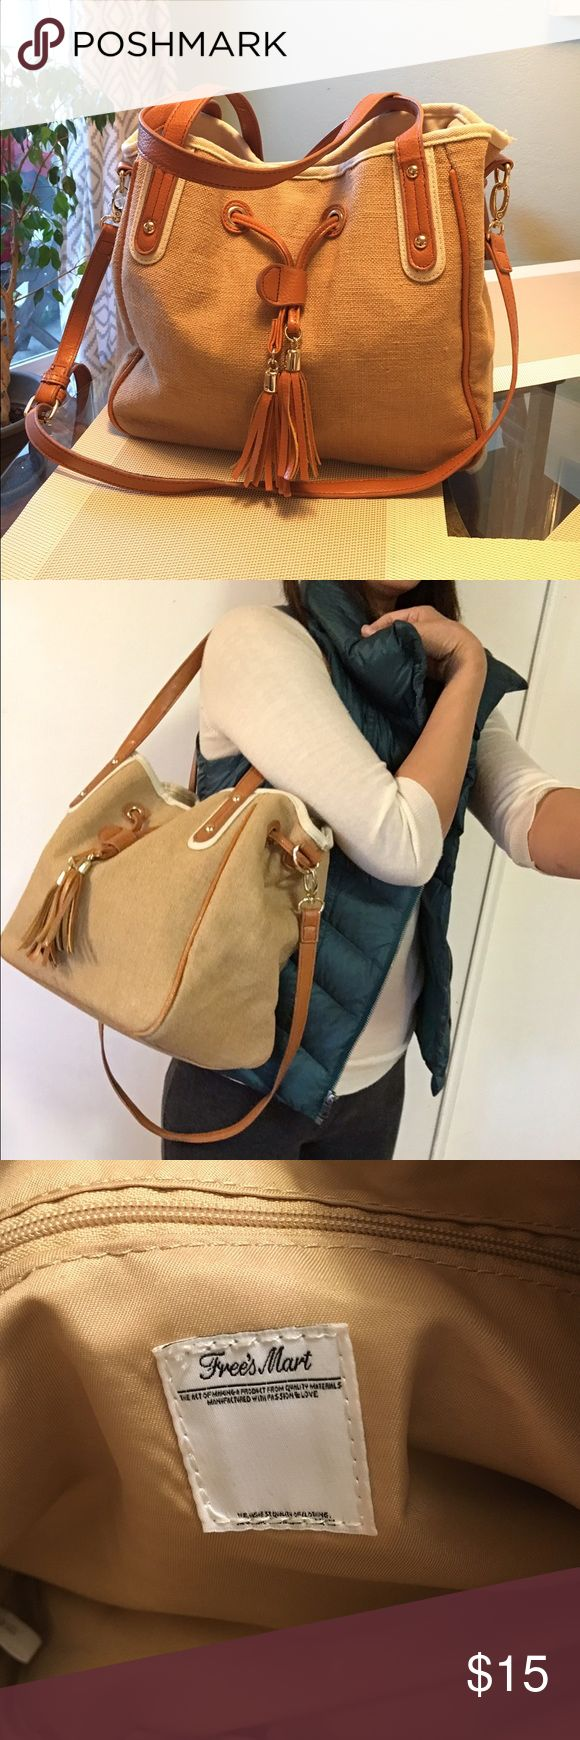 Brown lien and cotton tote/ hand bag Bought in Japan department store while traveling (2016.08). Linen and cotton fabric. Gold metal tone. Man made leather. Light and can carry lots. Free's Mart Bags Totes